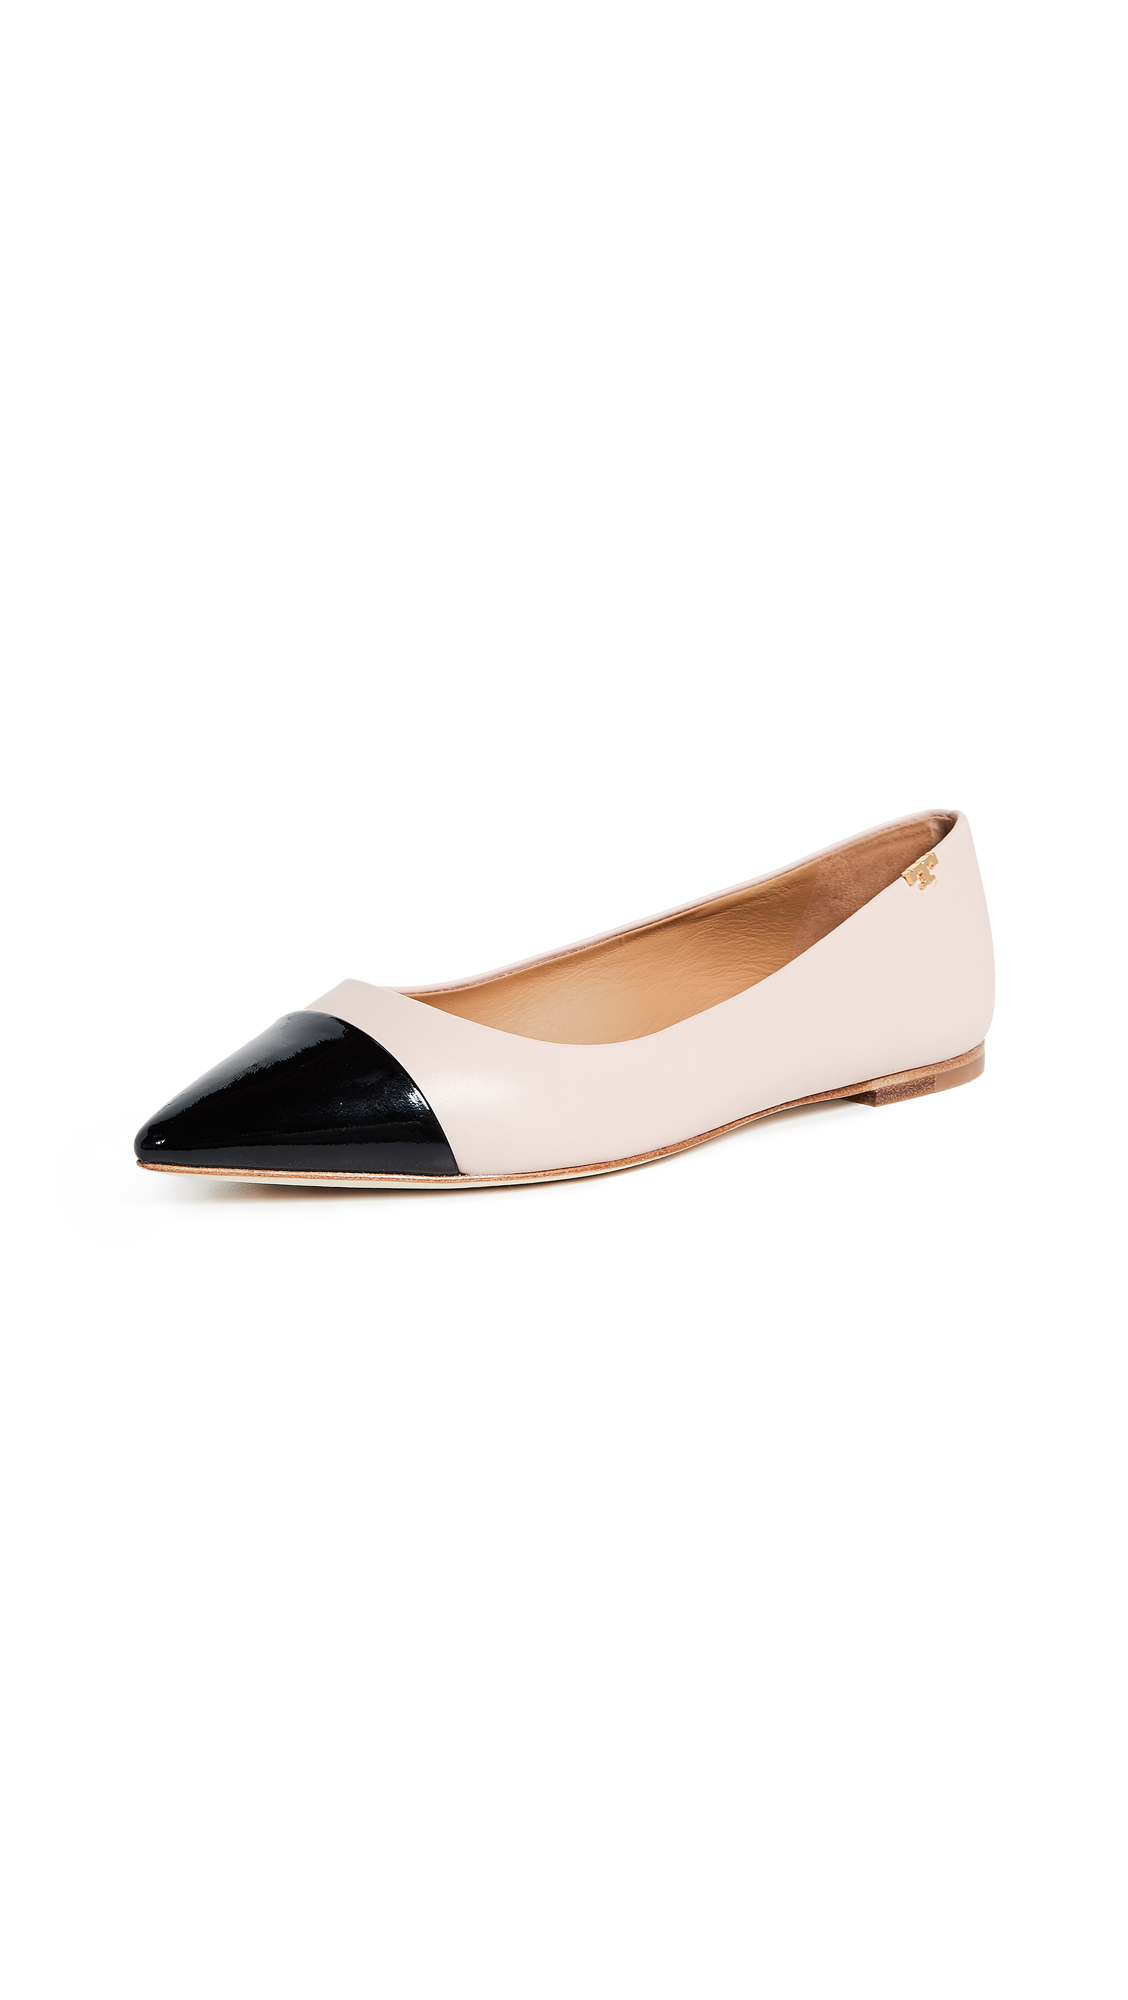 Tory Burch Penelope Cap Toe Flats - Sea Shell Pink/Perfect Black